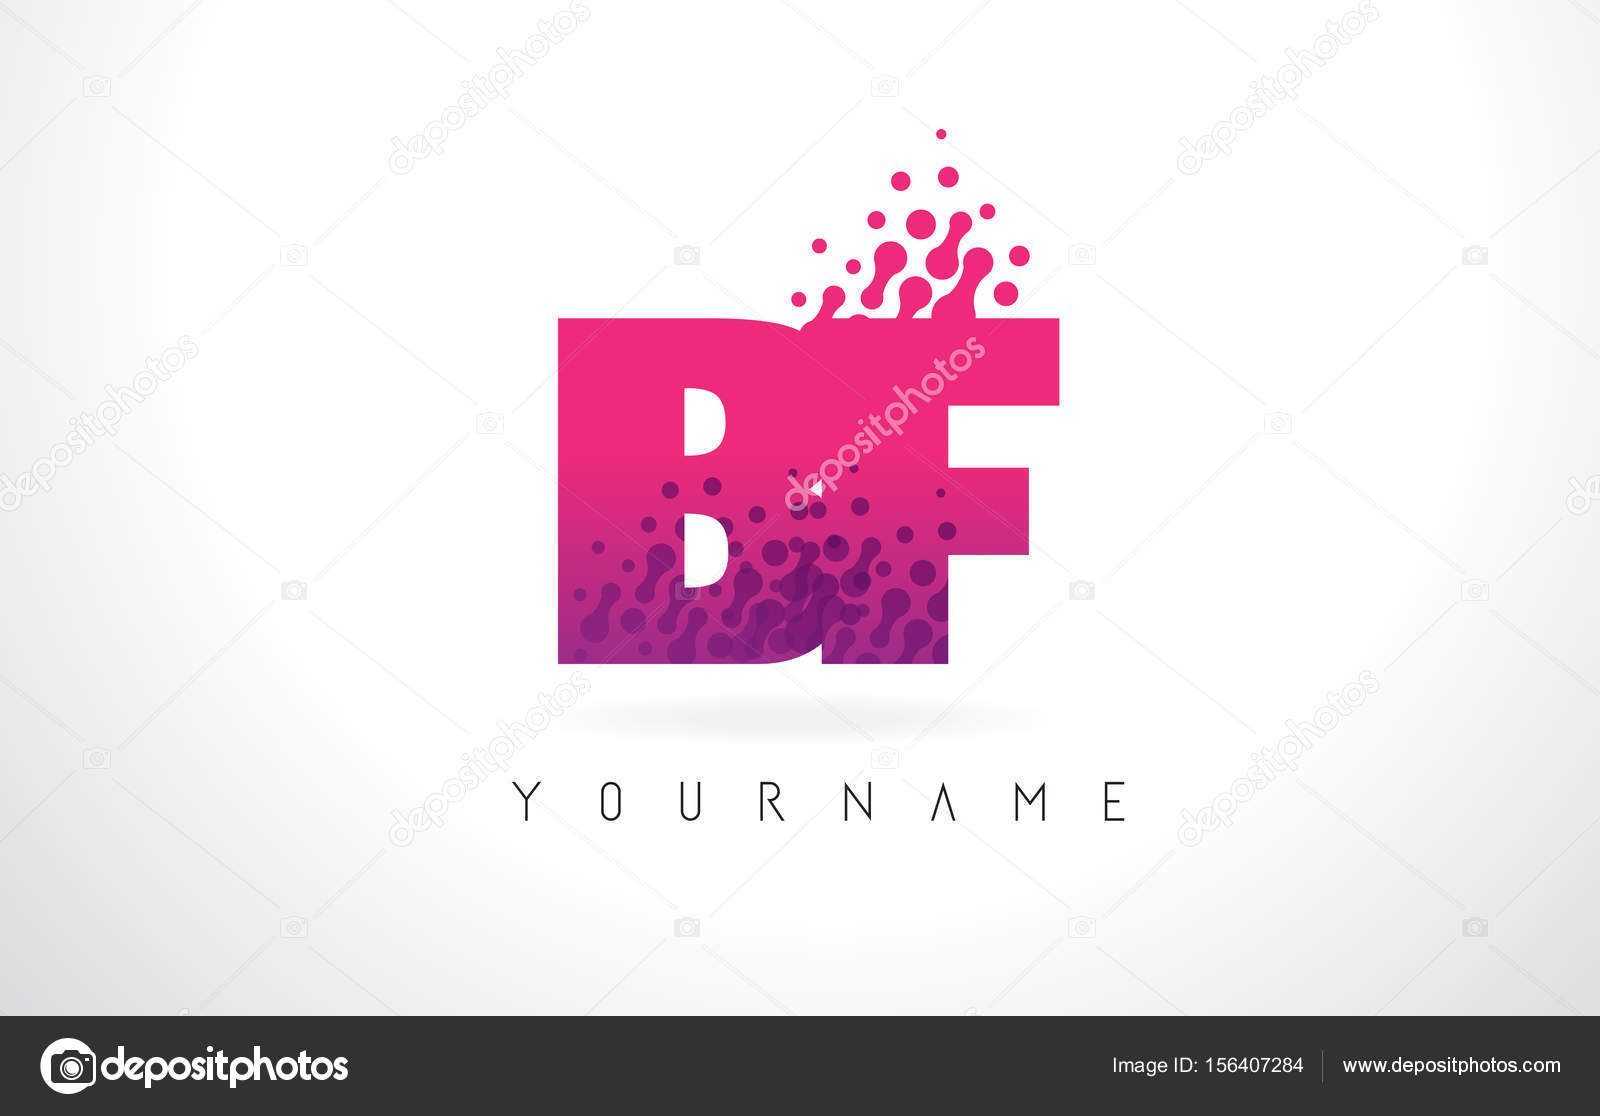 BF B F Letter Logo with Pink Purple Color and Particles Dots Des ...